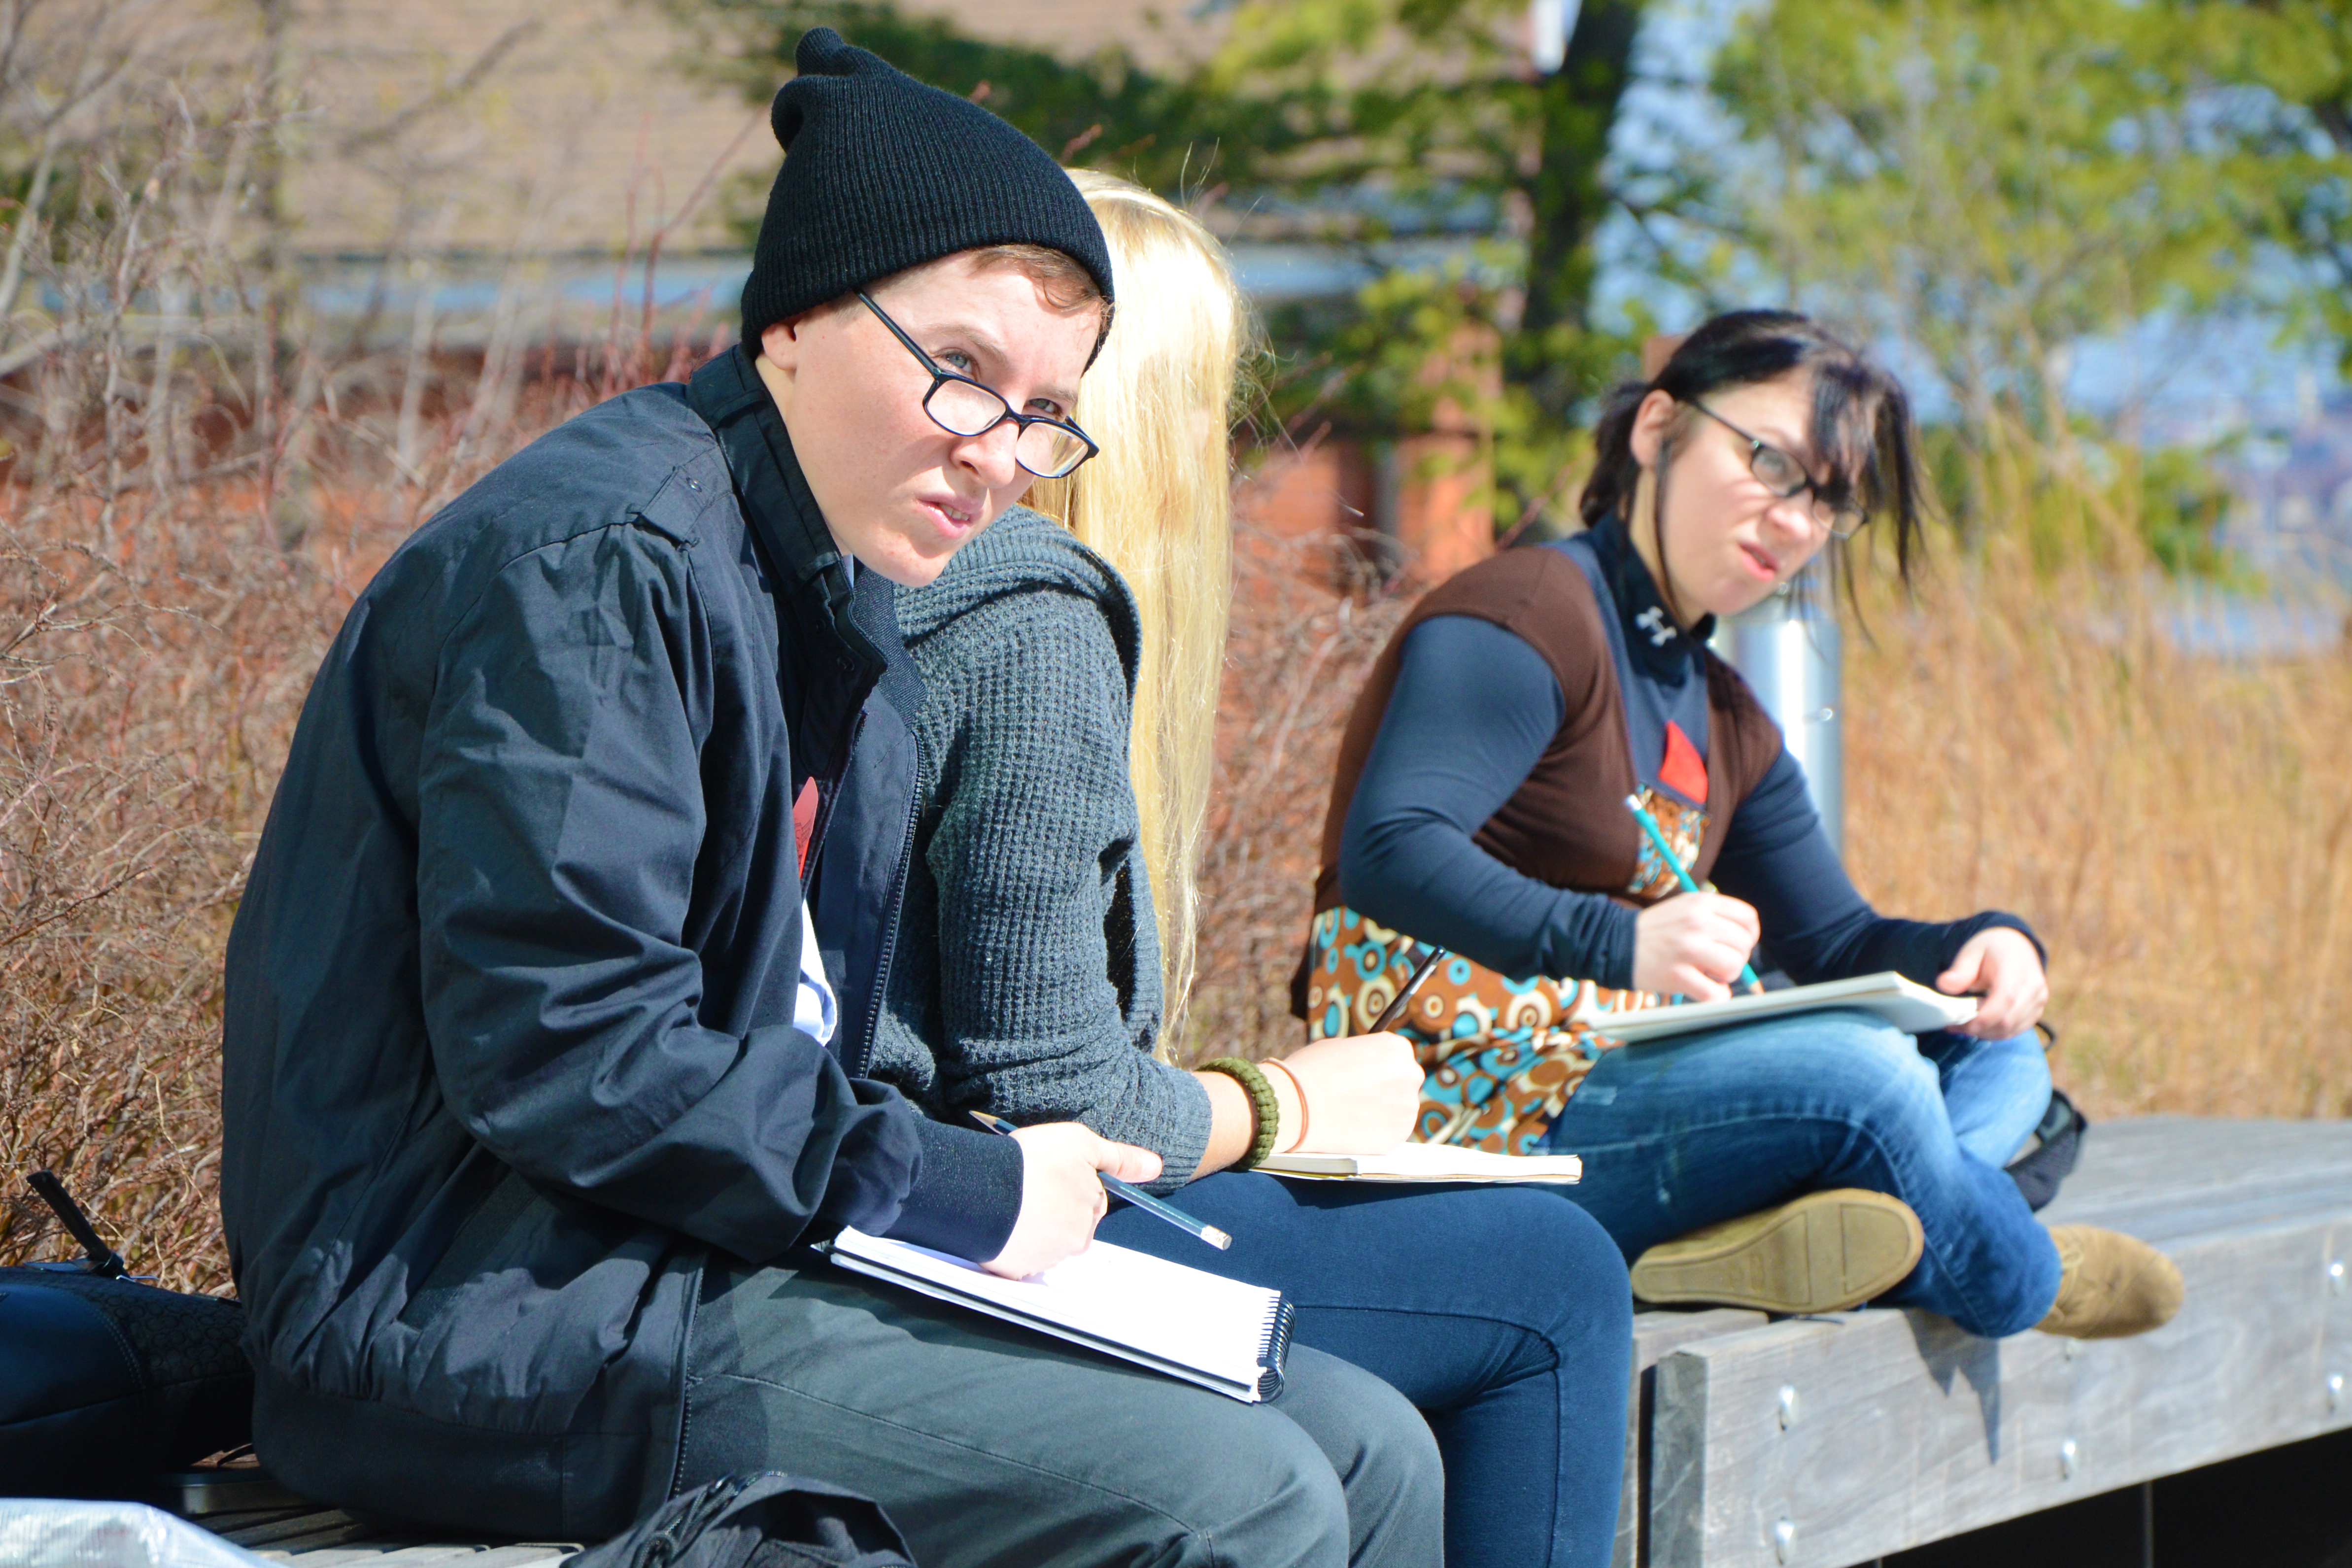 BMIC students sharpen their skills on Ft. McHenry